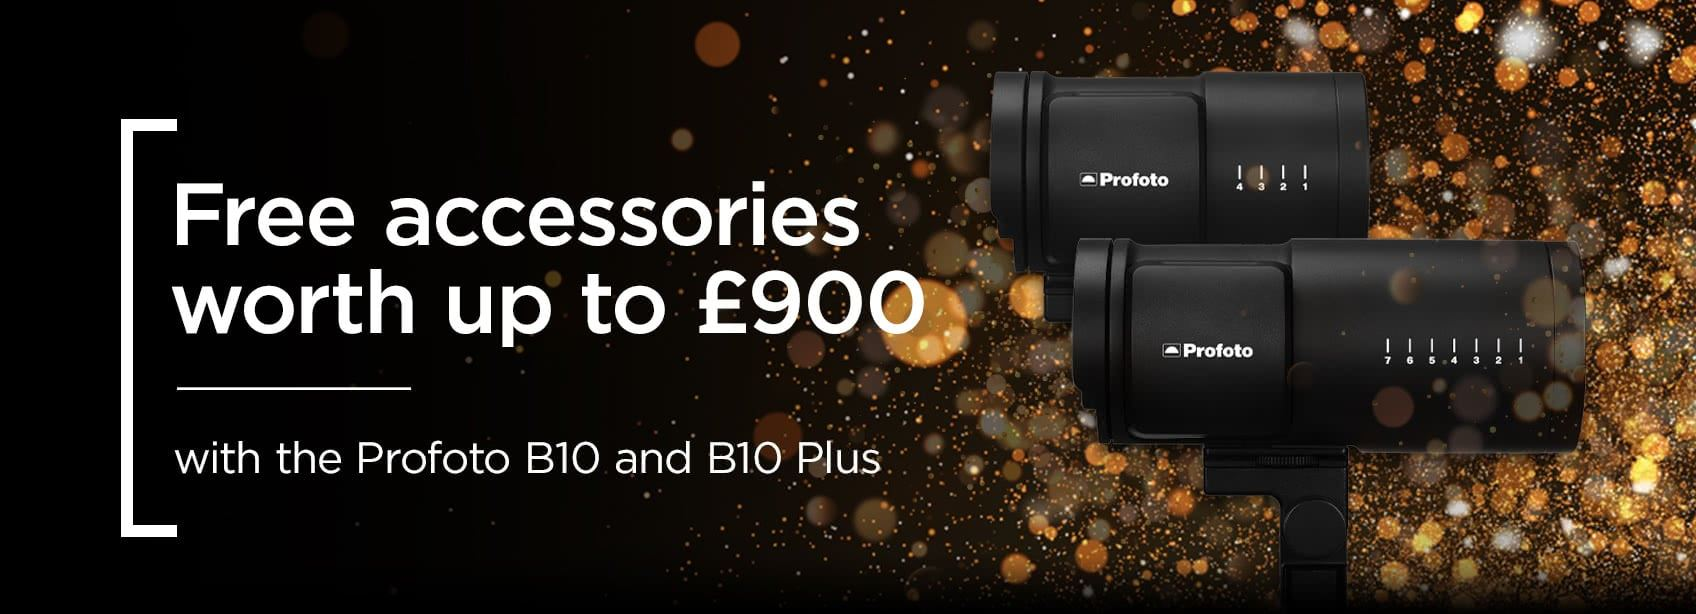 Profoto B10 Accessory Offer - Up to £900 of free Light Shaping Tools